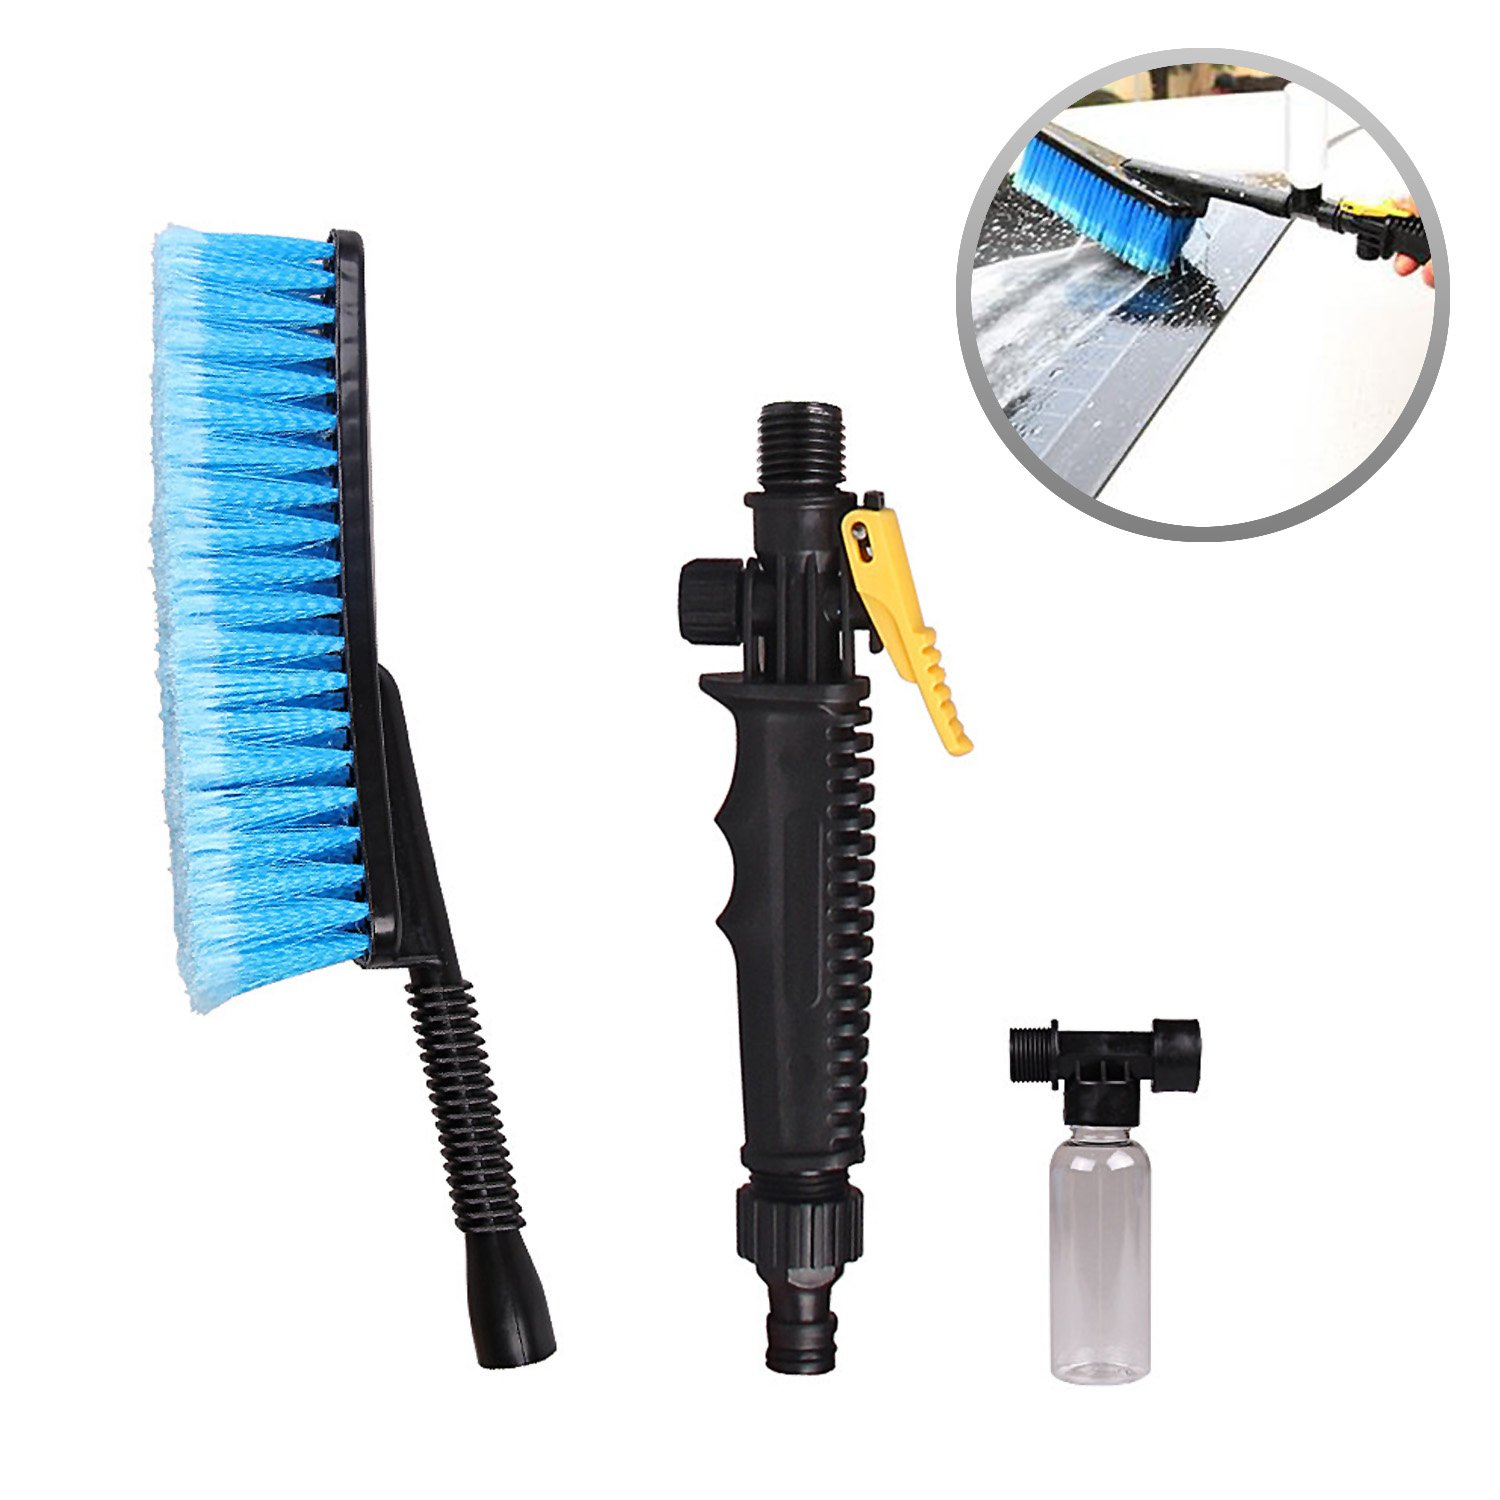 Super PDR Soft bristle Car Washing Brush Cleaning Kit Flow-Thru washing brush with water and foam sprayer Vehicle Cleaning Tool Washer Bottle 4332943599